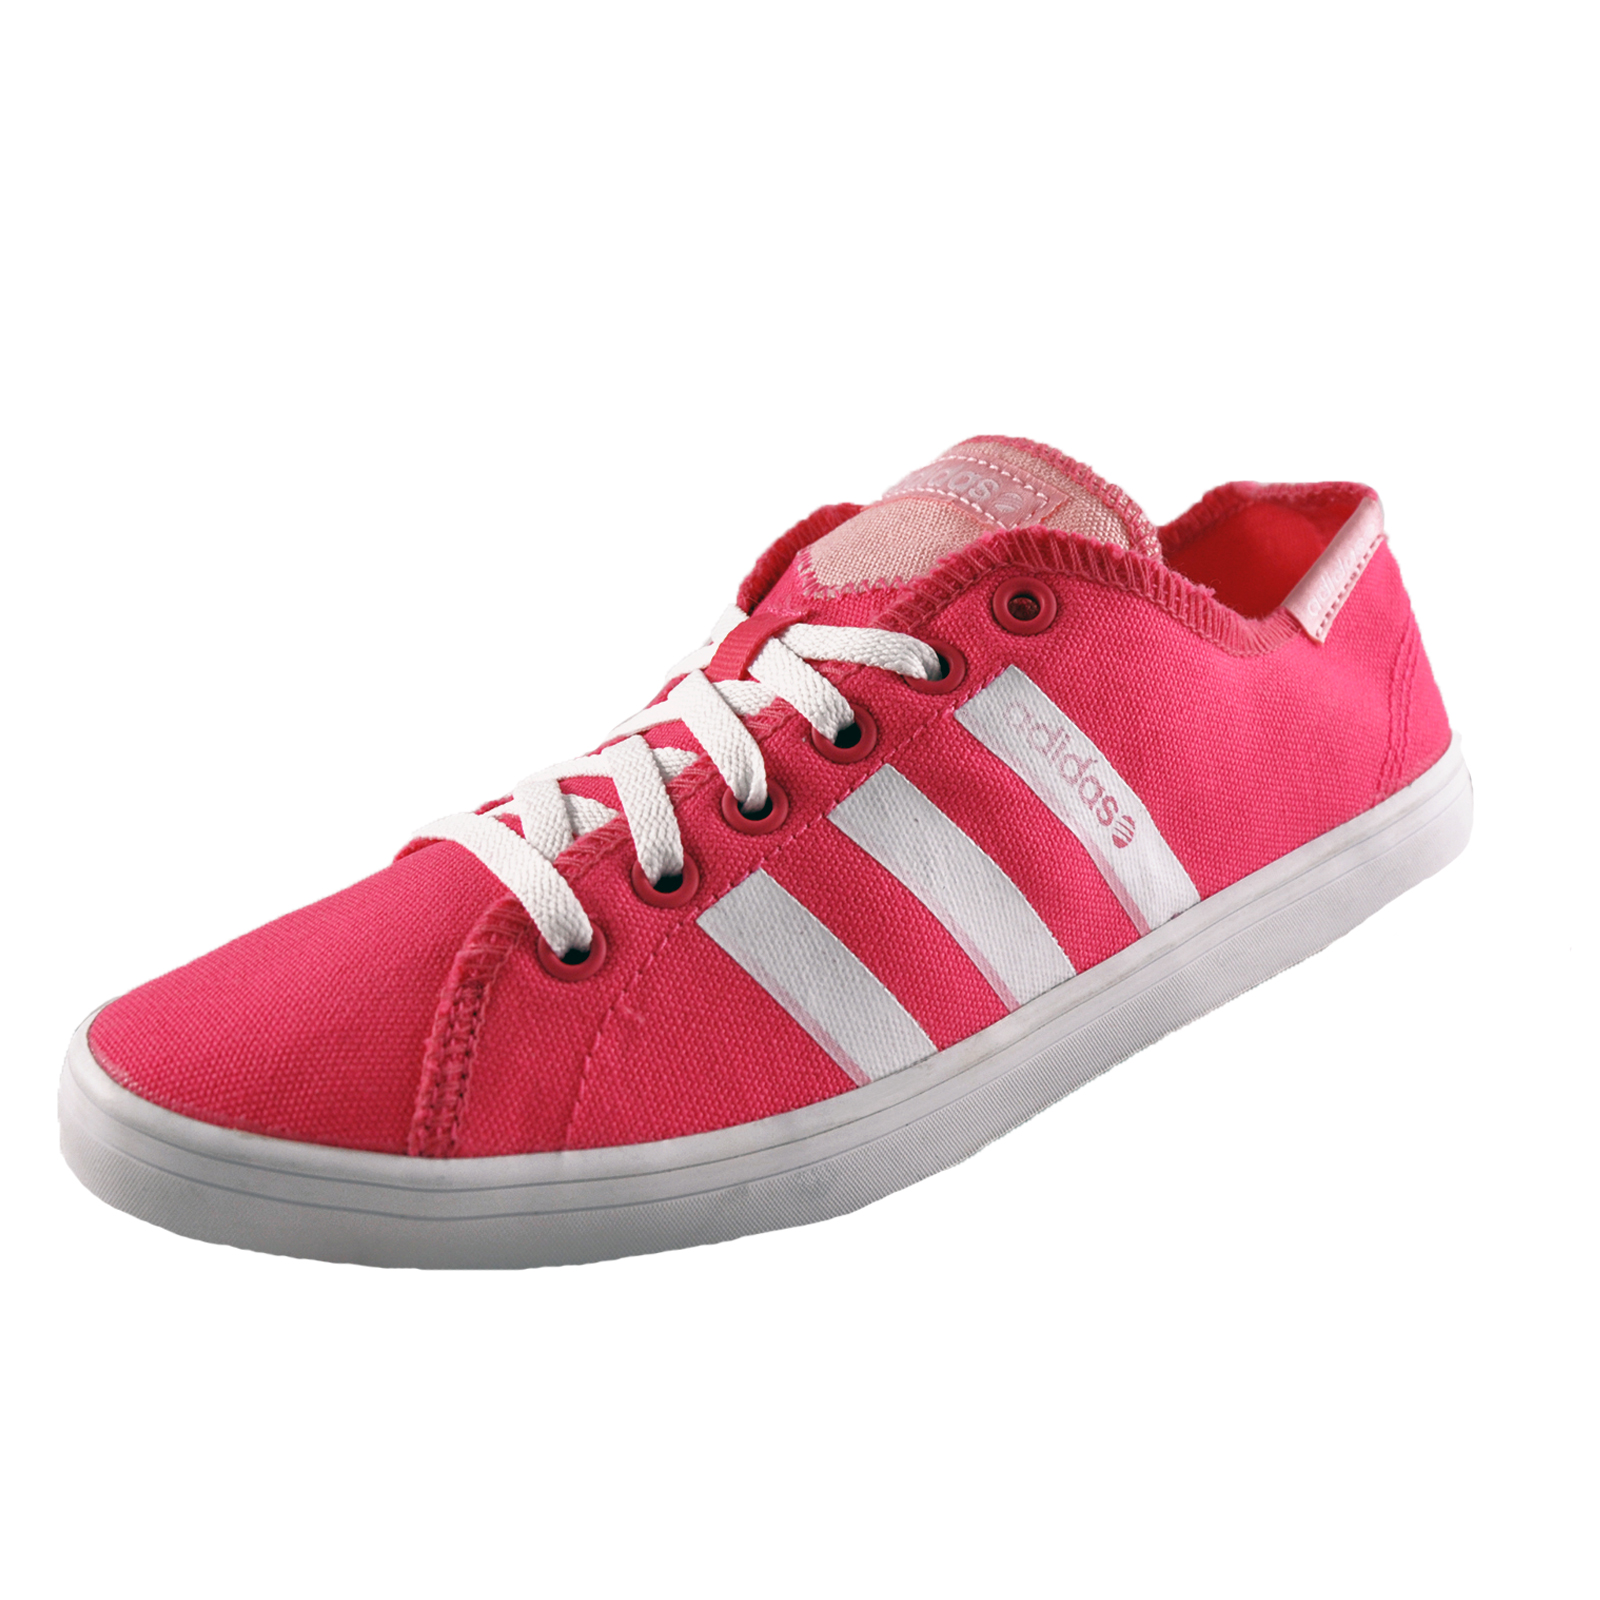 Bball Shoes Womens